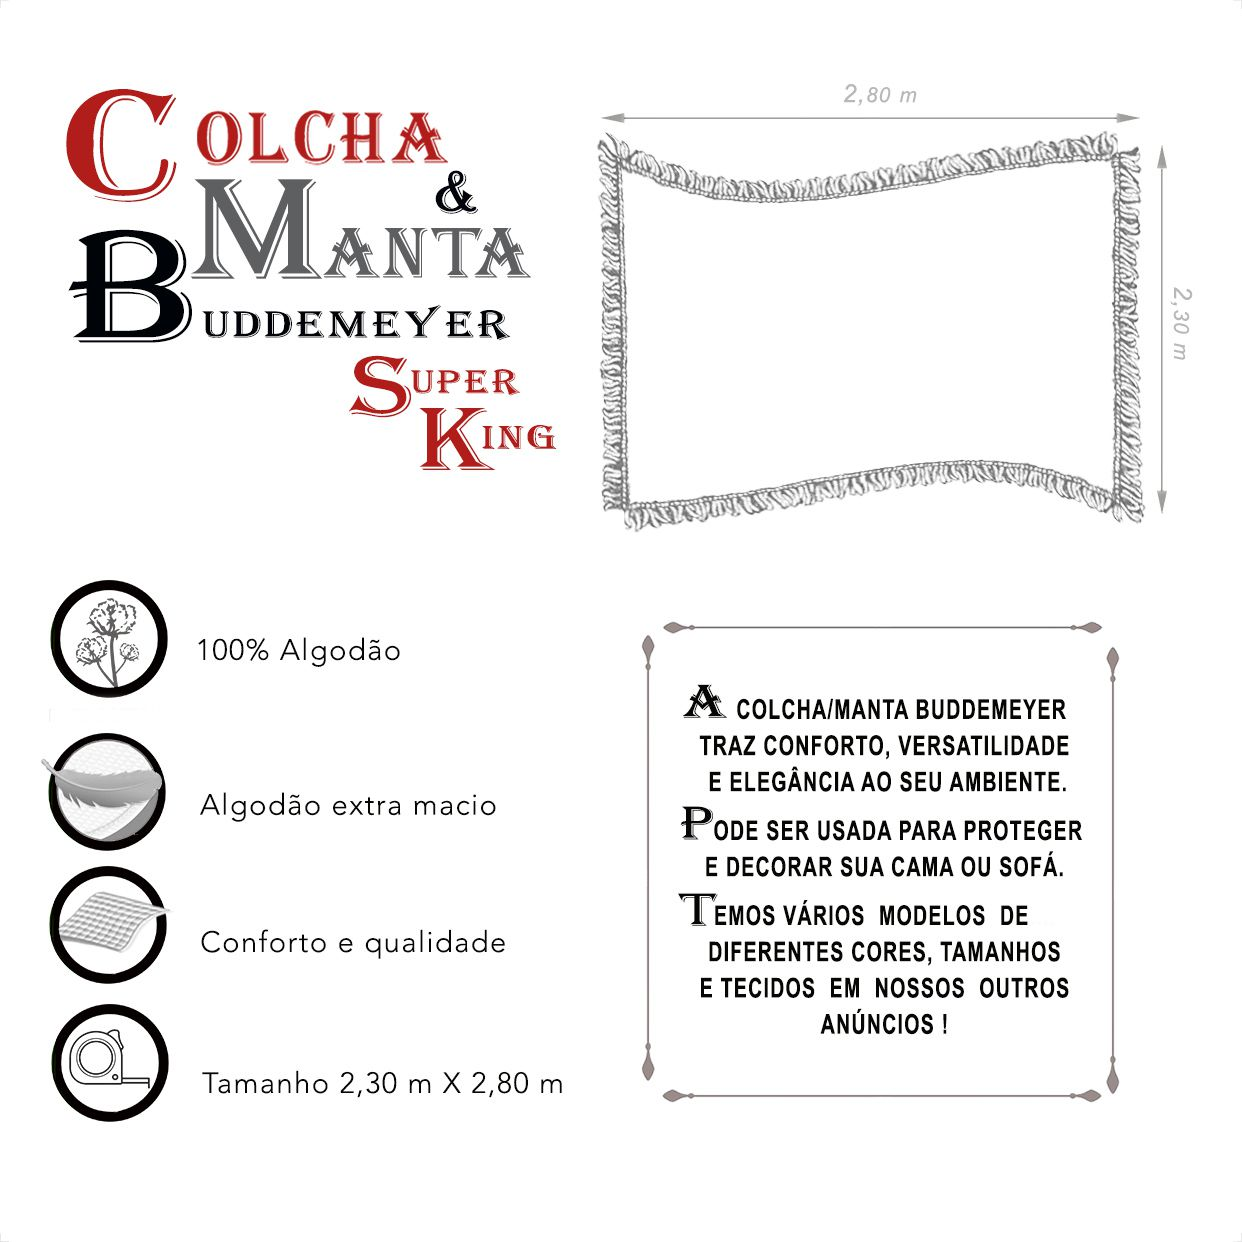 Manta e Colcha Buddemeyer Super King (2,30m x 2,80m)